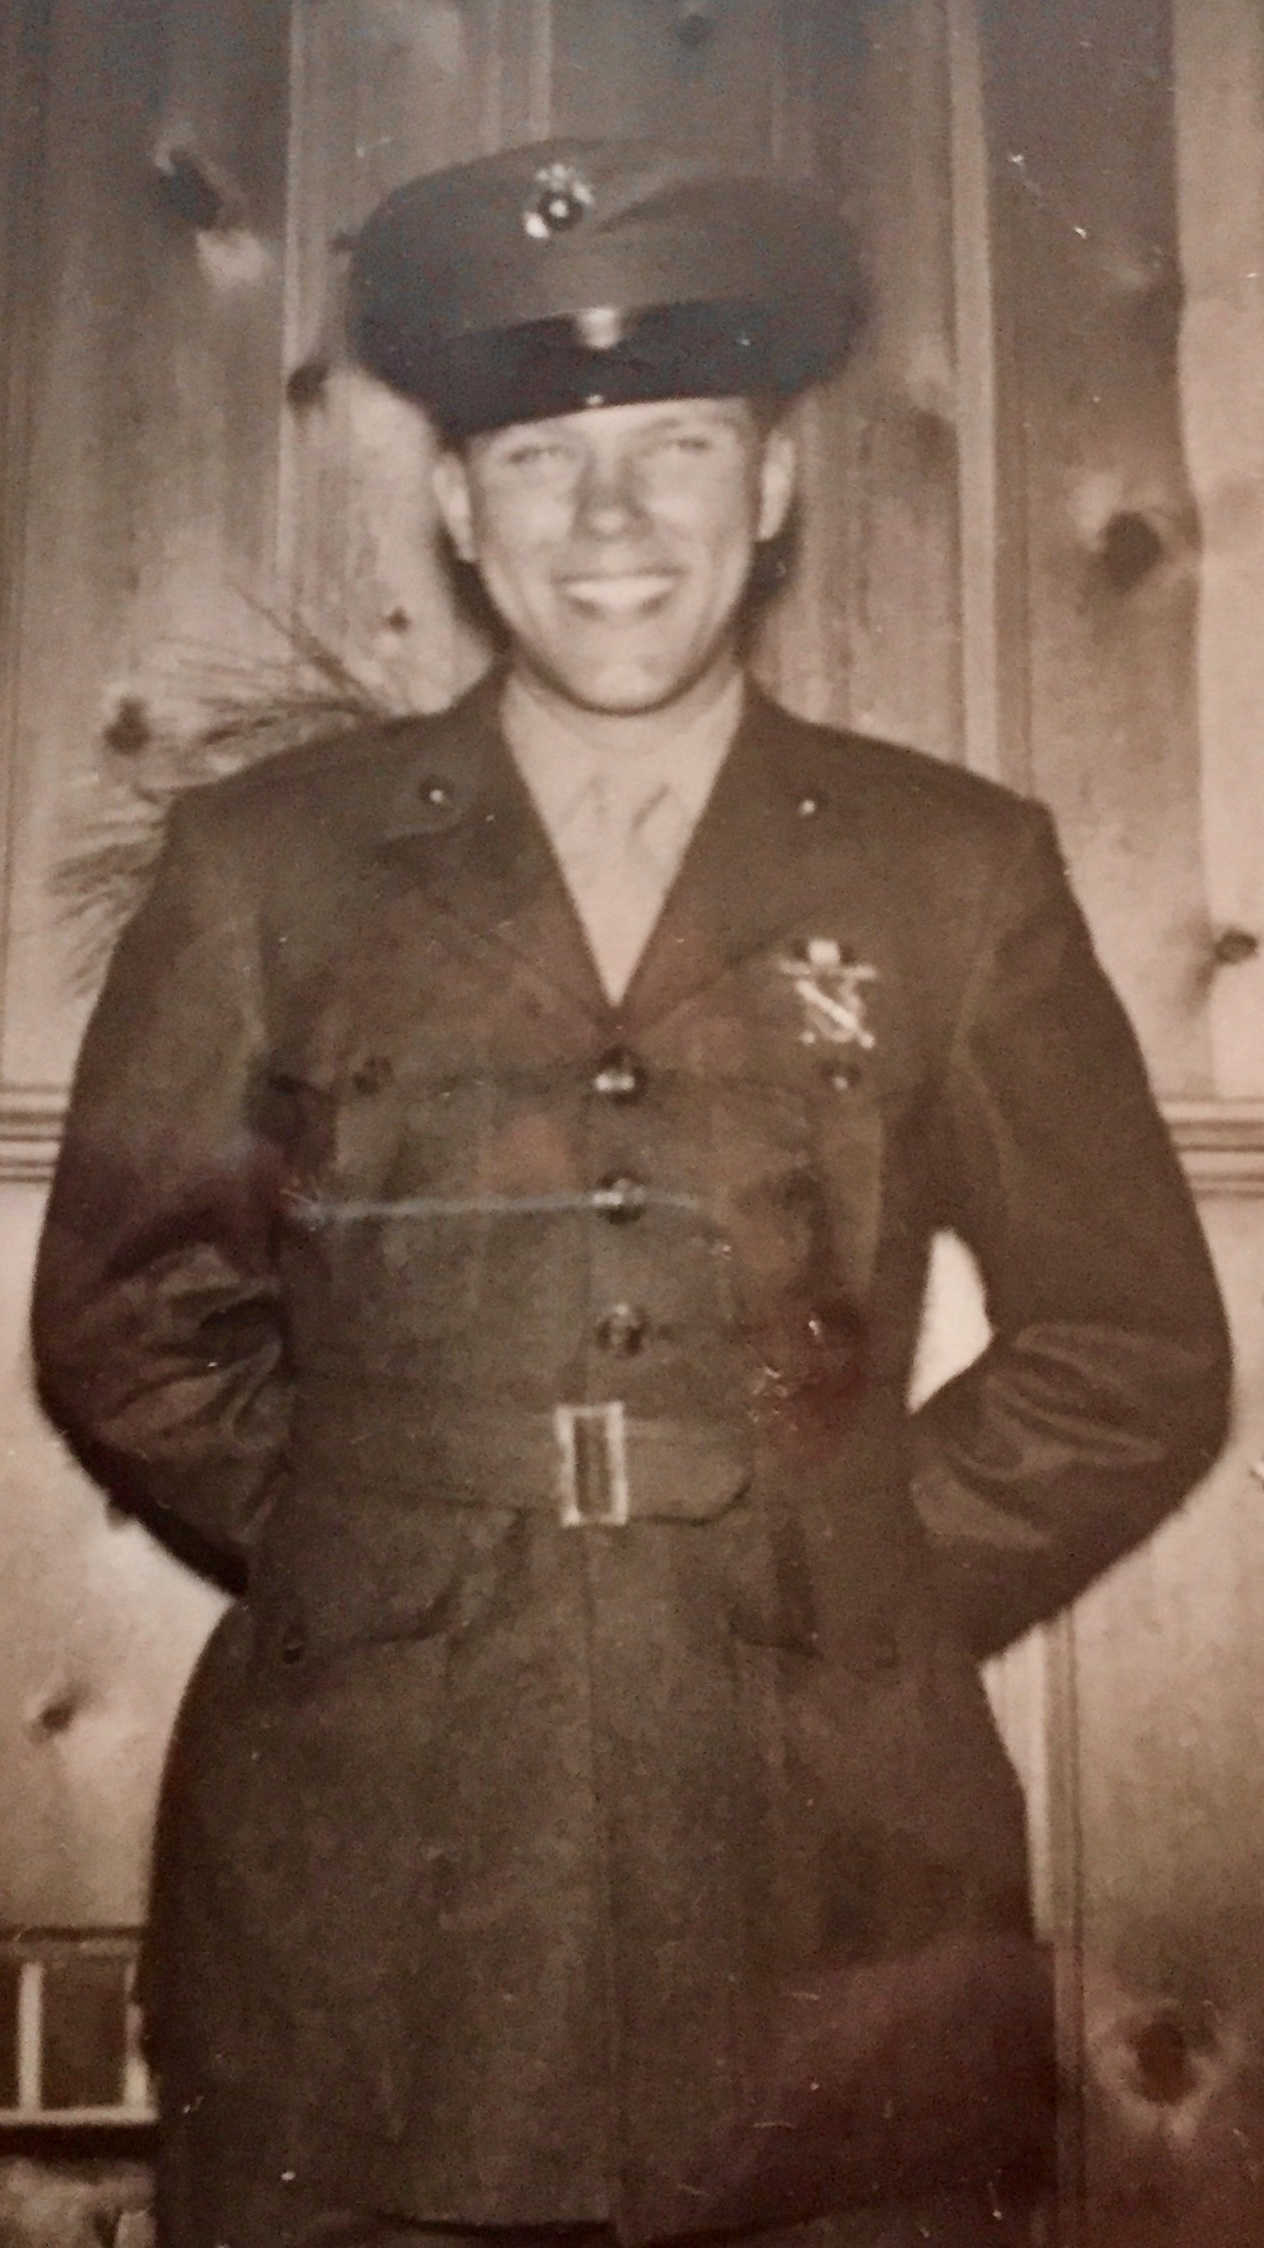 Here is David's brother in his Marine uniform.